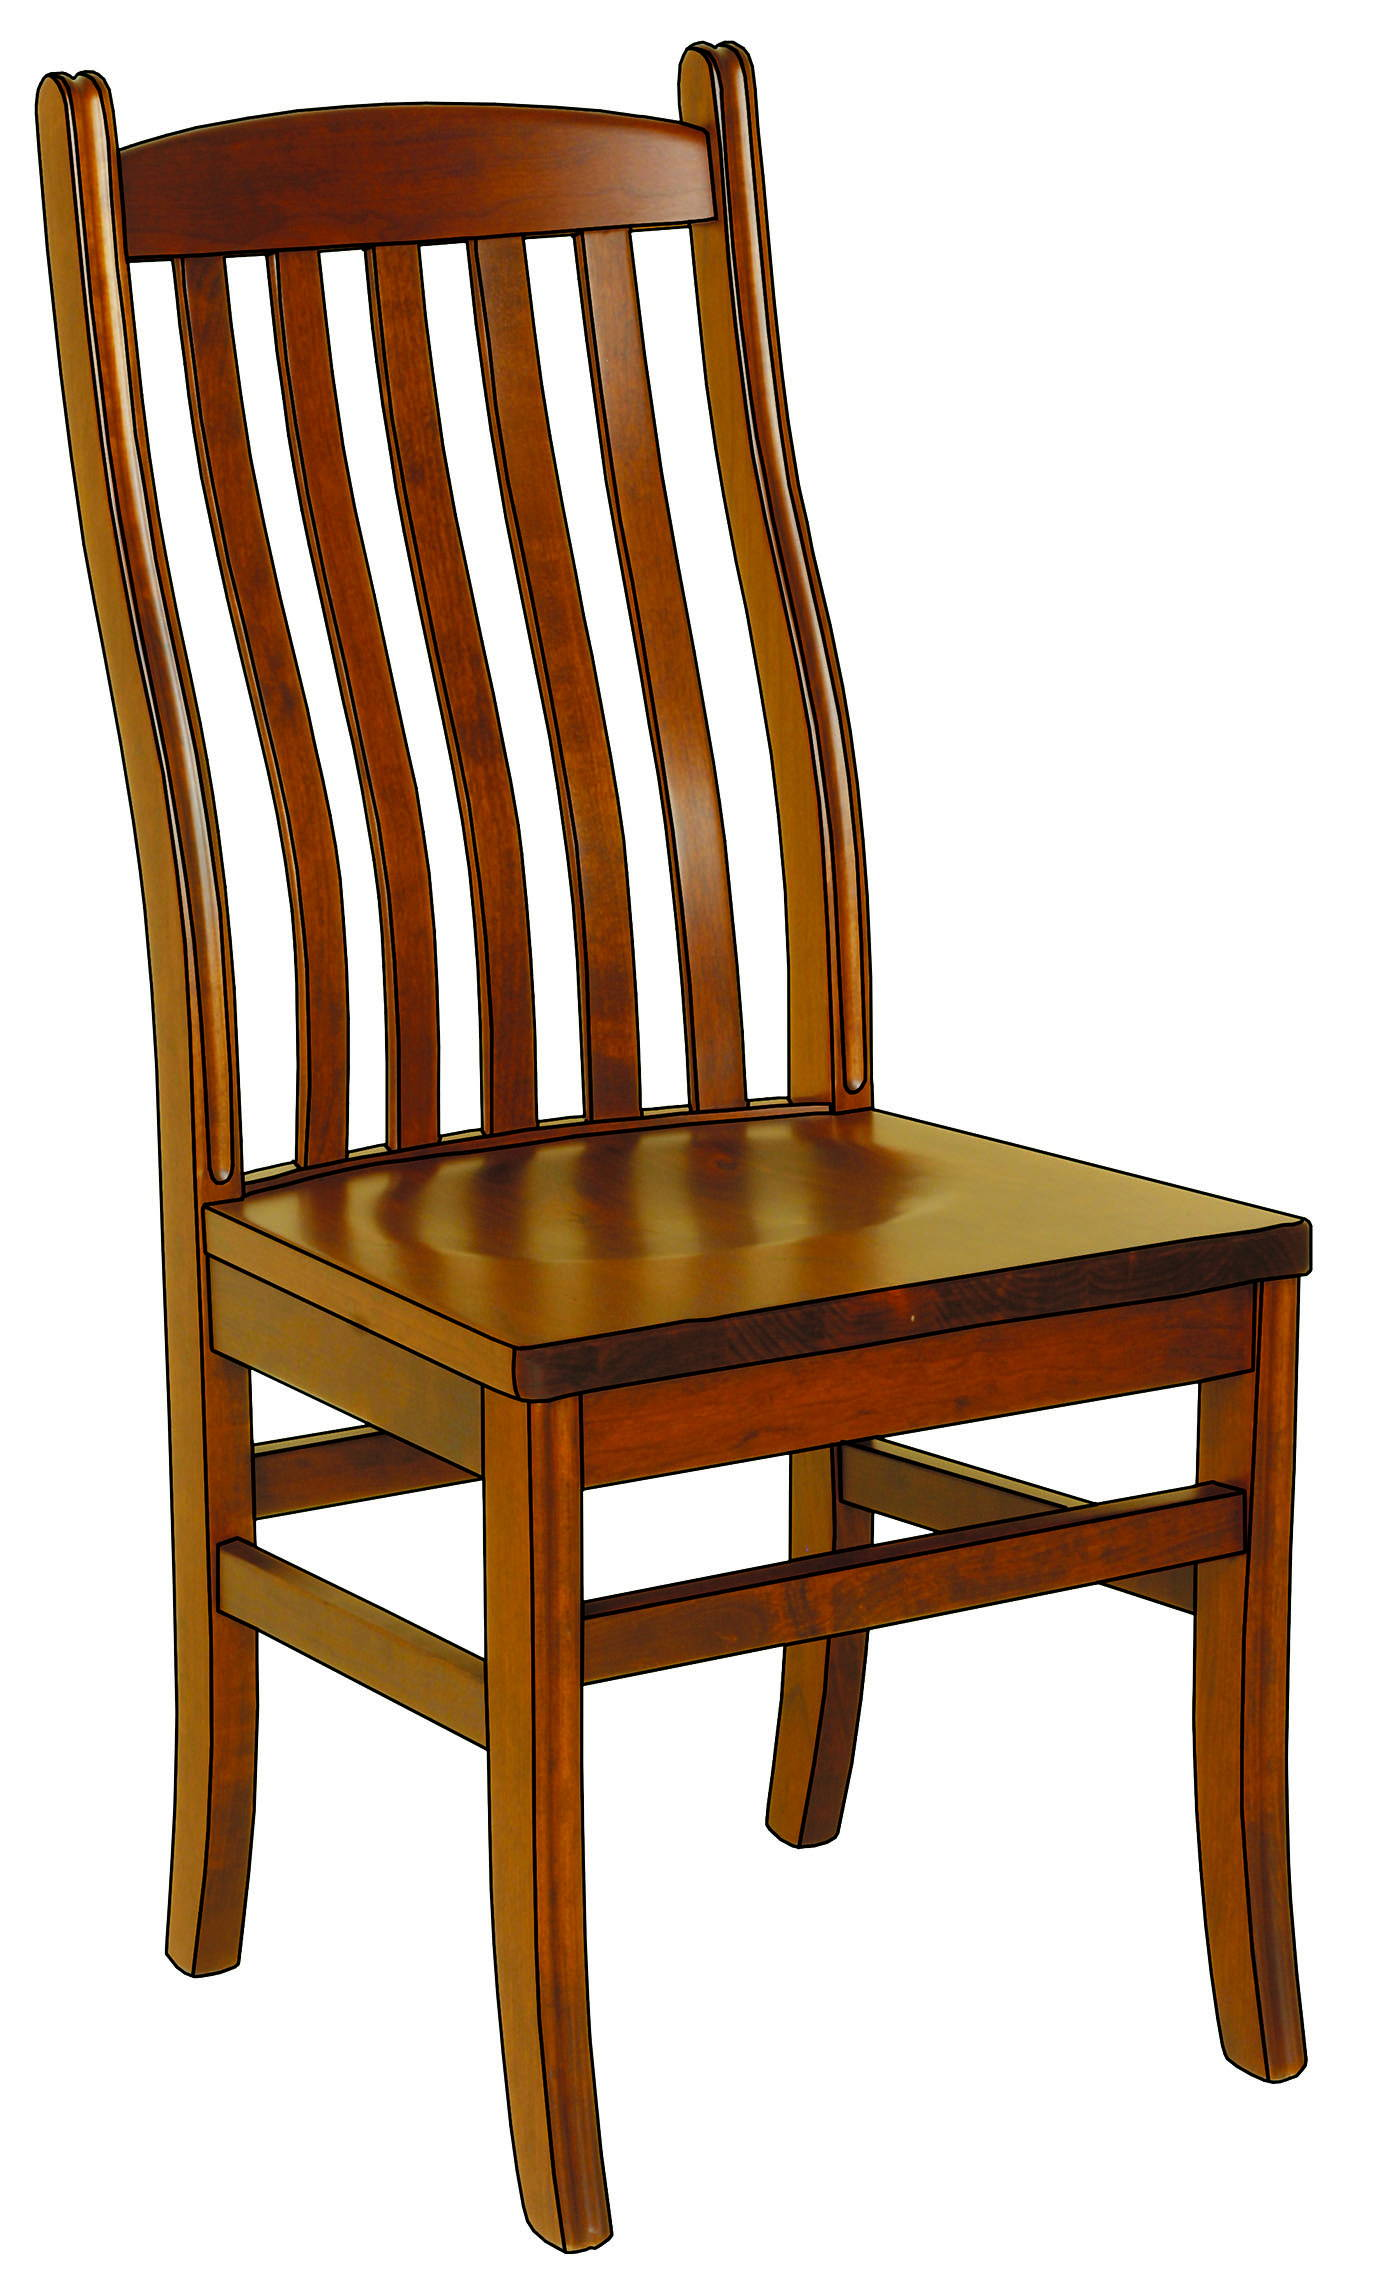 Williamson Solid Wood, Handcrafted Kitchen Chair or DIning Chair from Harvest Home Interiors Amish Furniture